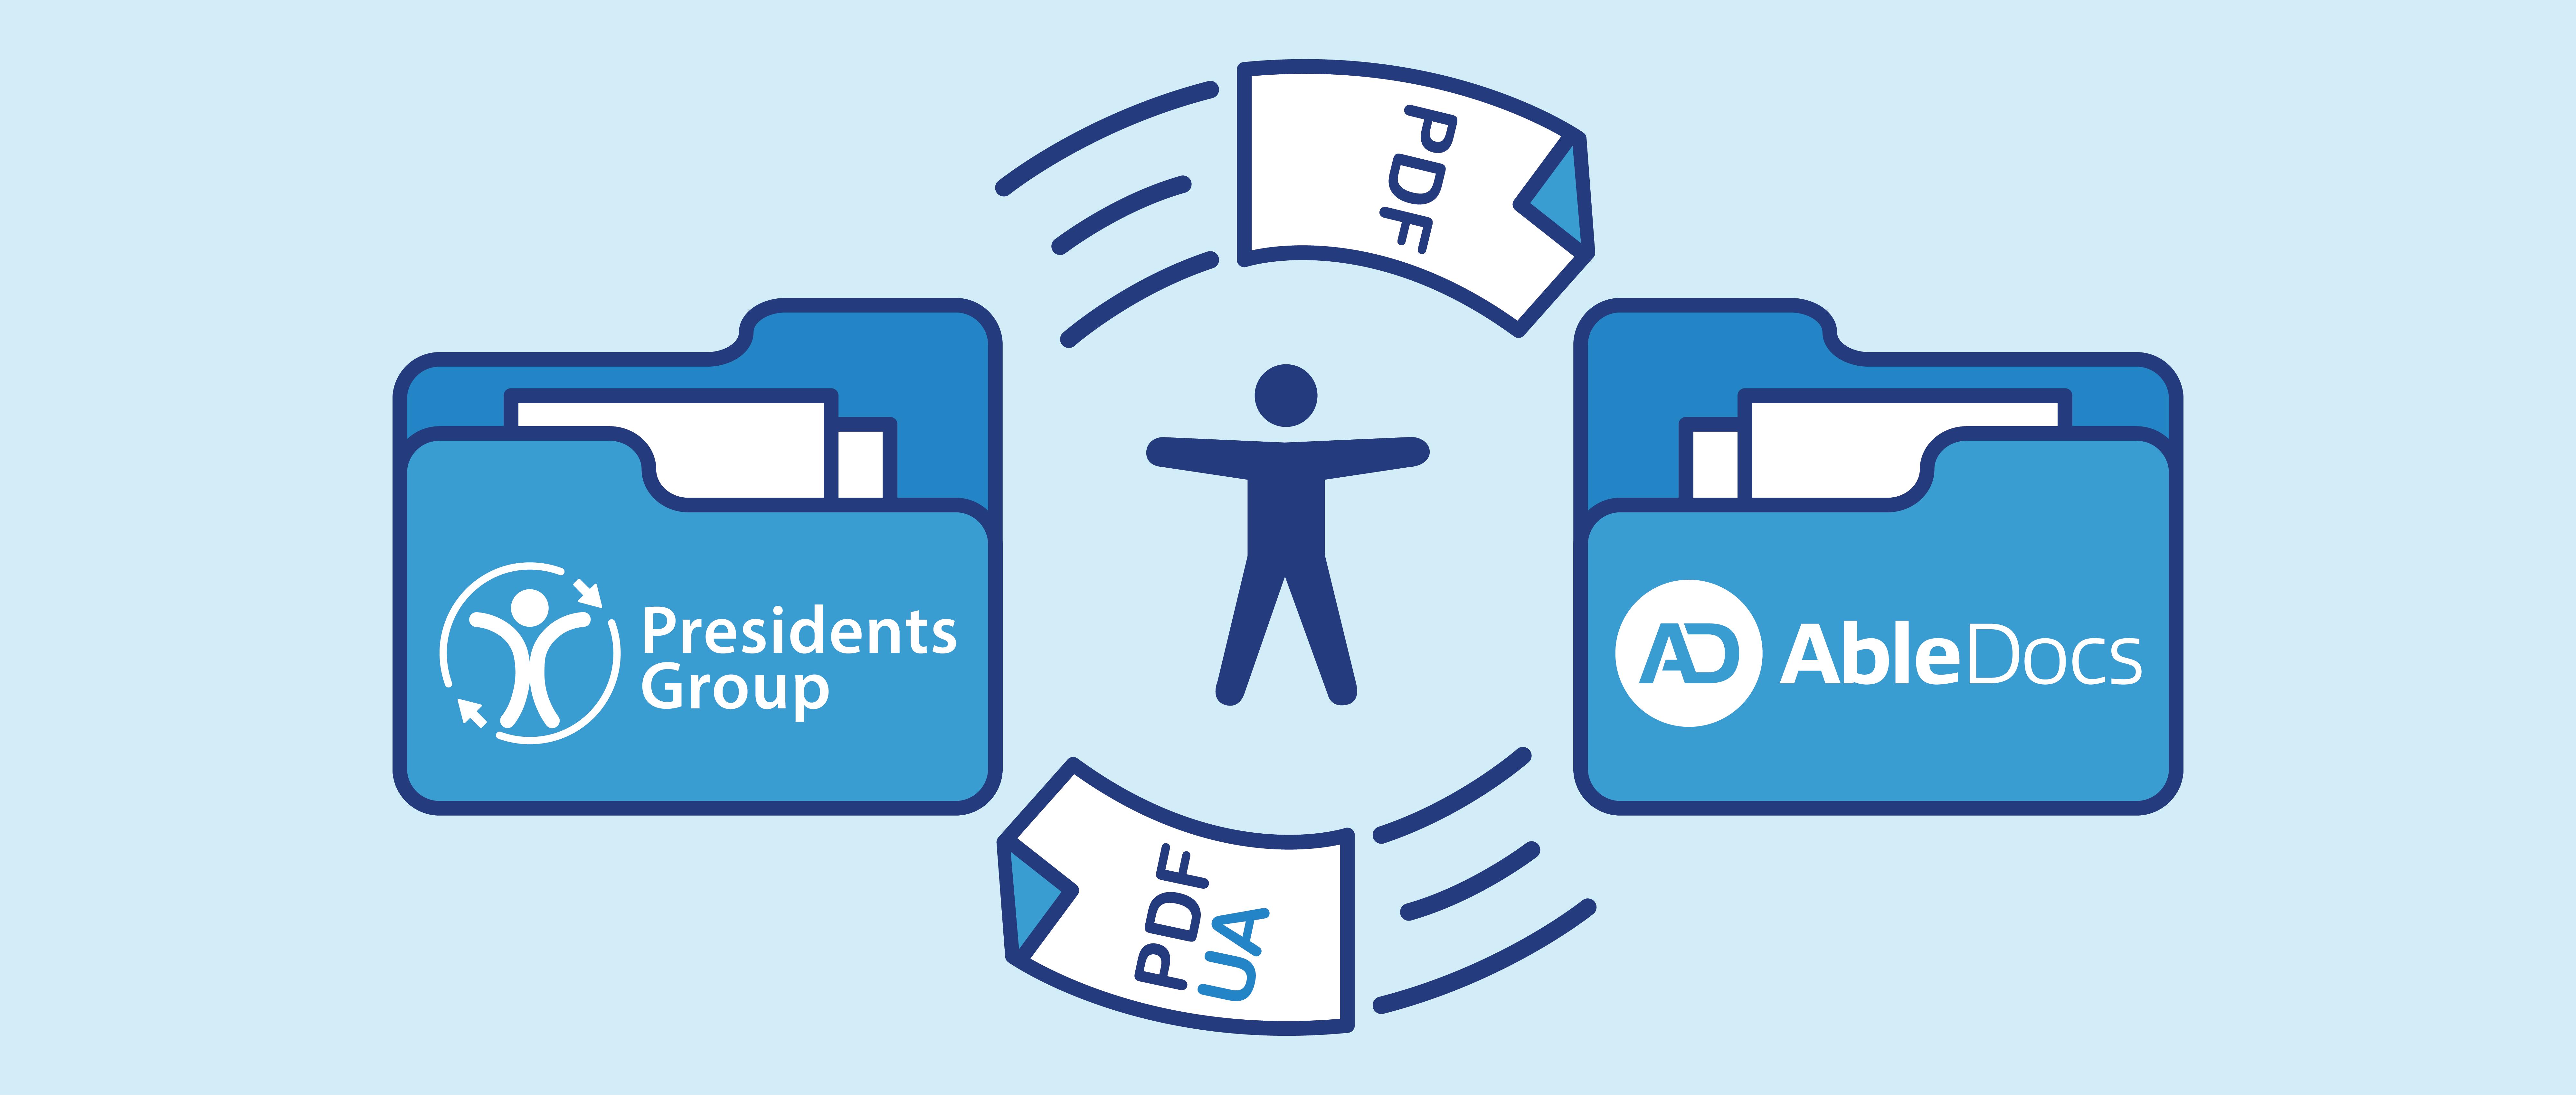 Presidents Group and AbleDocs working together to create accessible documents